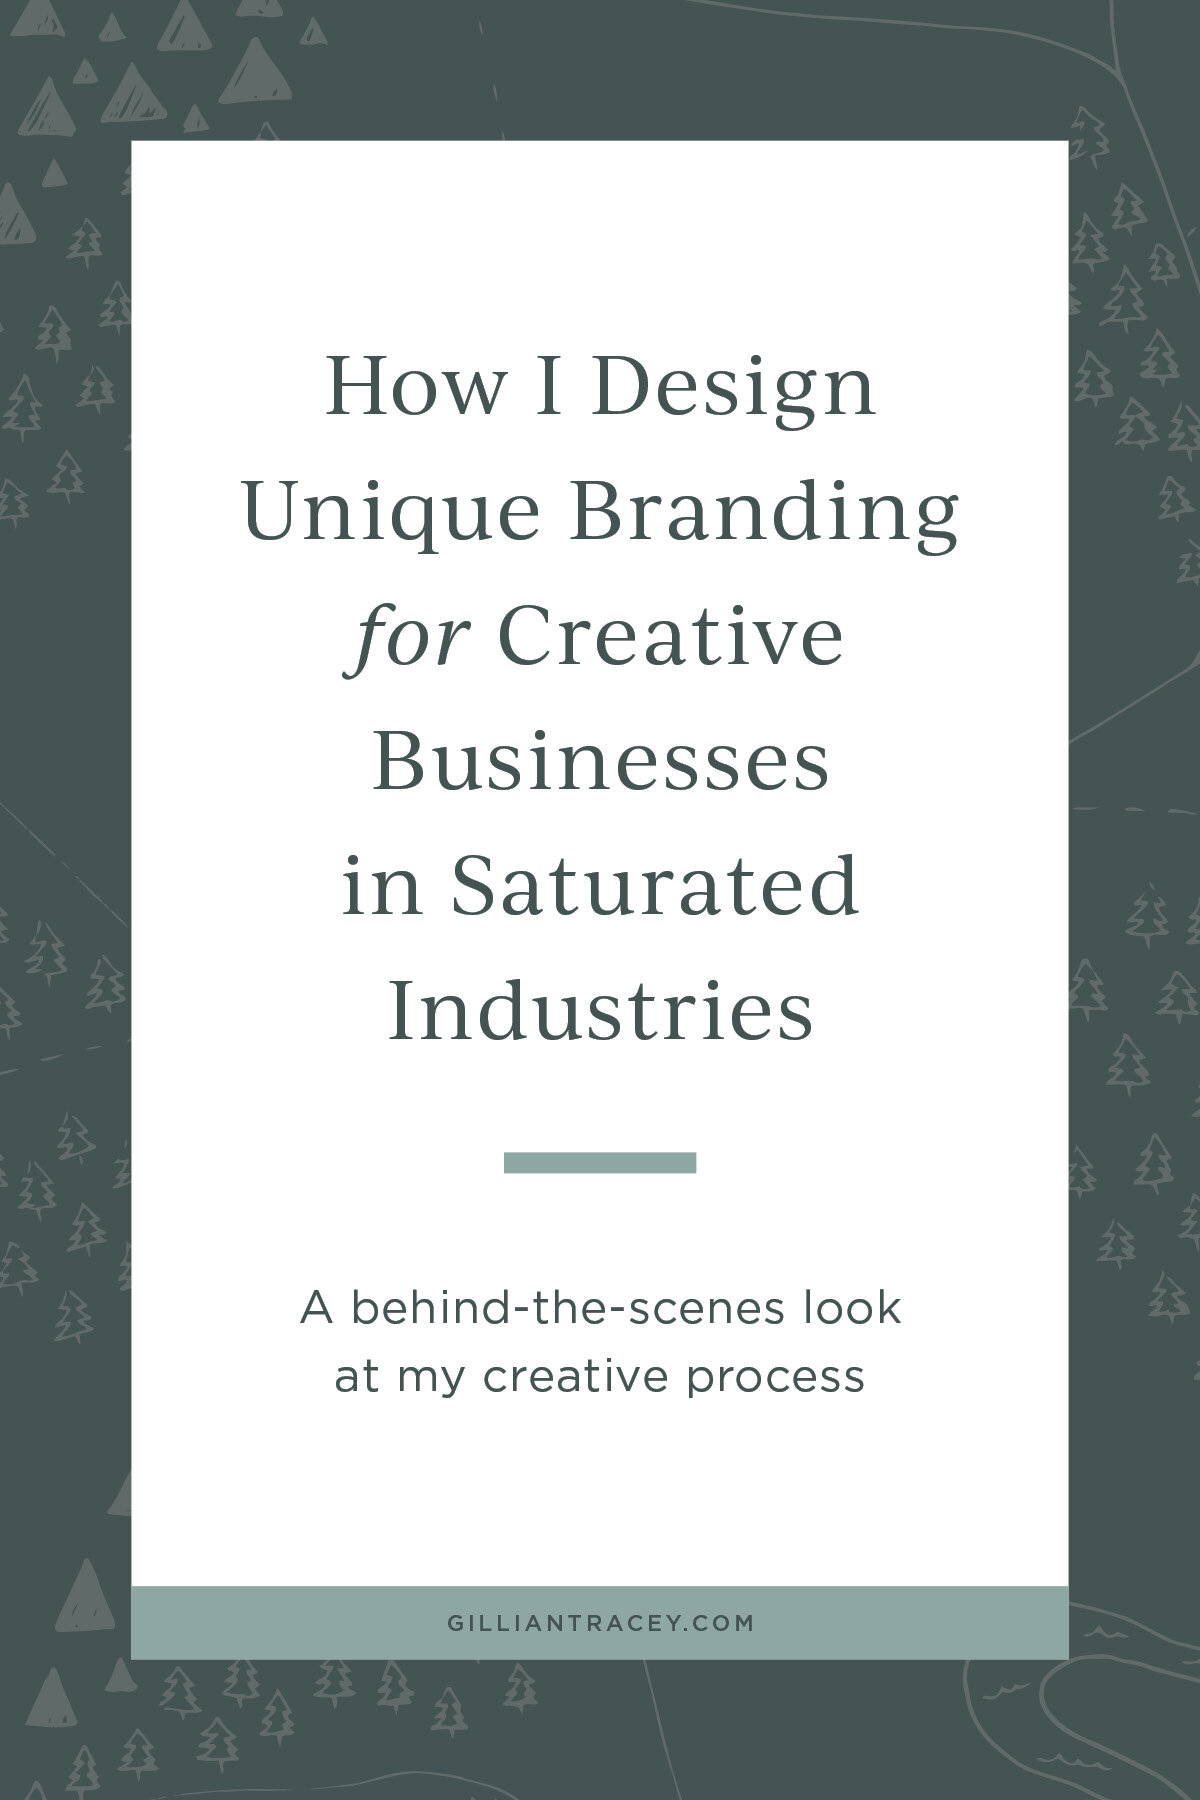 How I Design Unique Branding for Creative Businesses in Saturated Industries, by Gillian Tracey Design